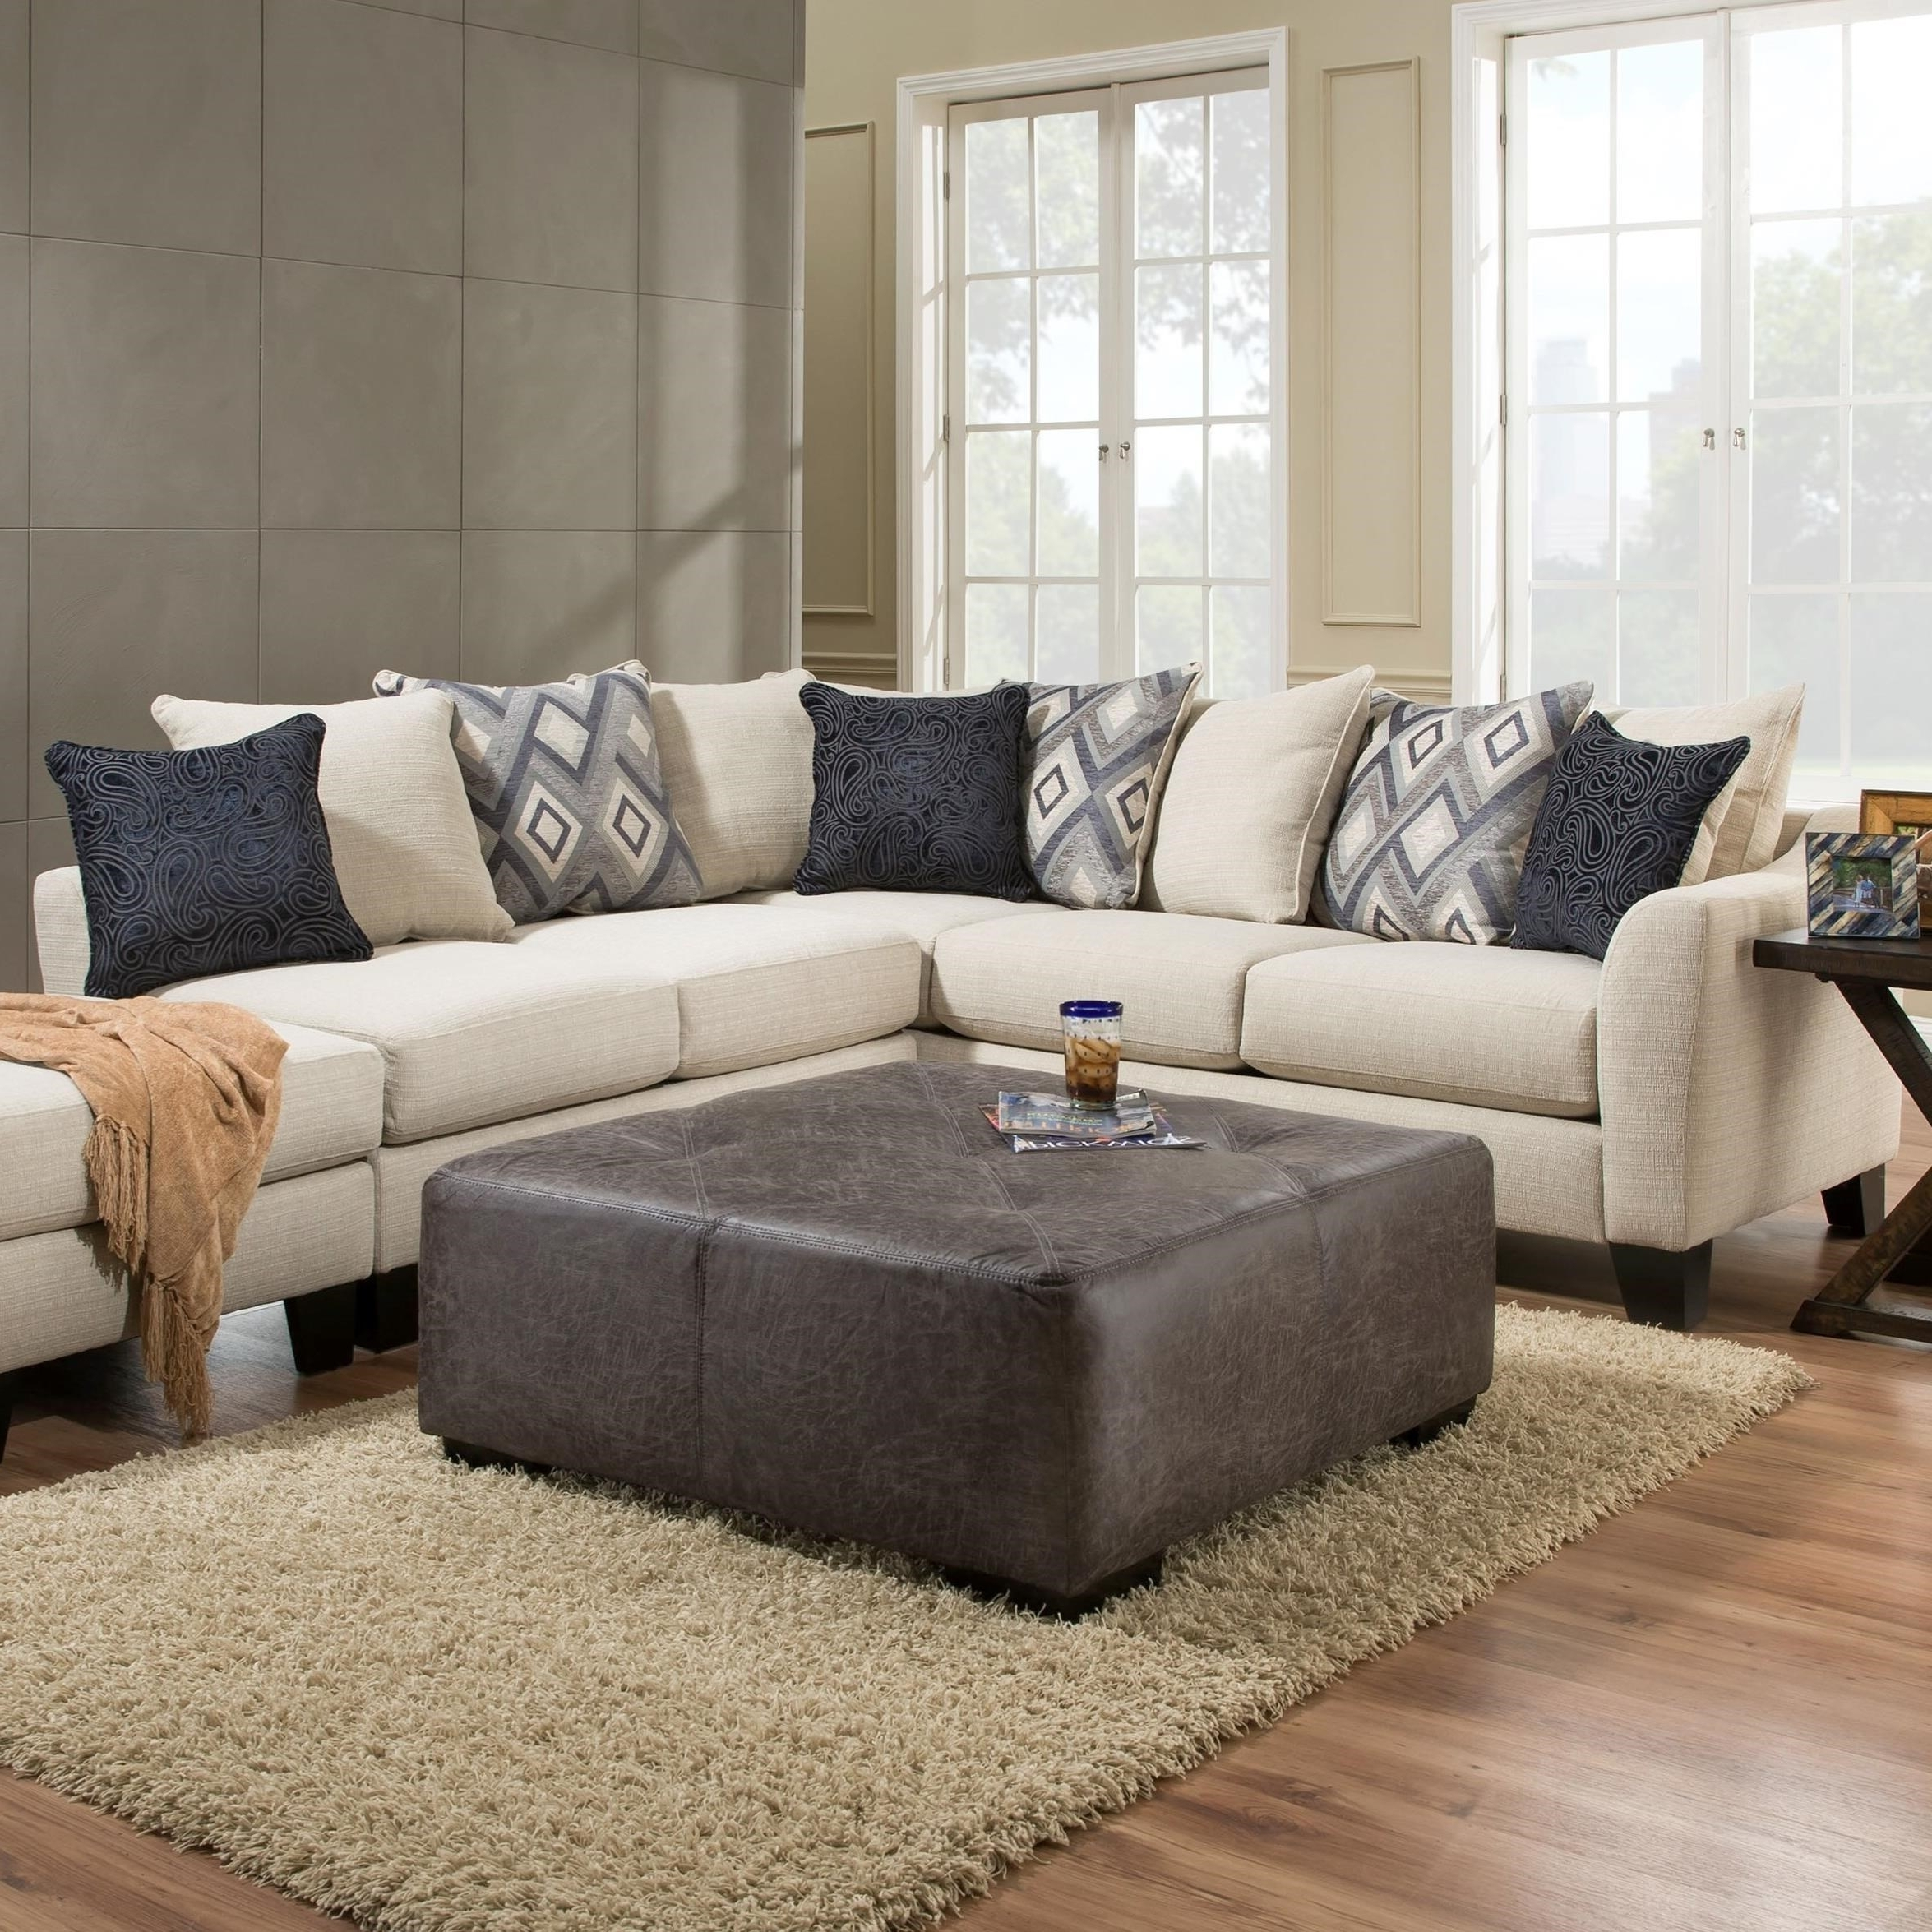 Current Albany R759 2 Piece Sectional Sofa In Dynasty Cream Fabric Throughout Hattiesburg Ms Sectional Sofas (View 8 of 20)